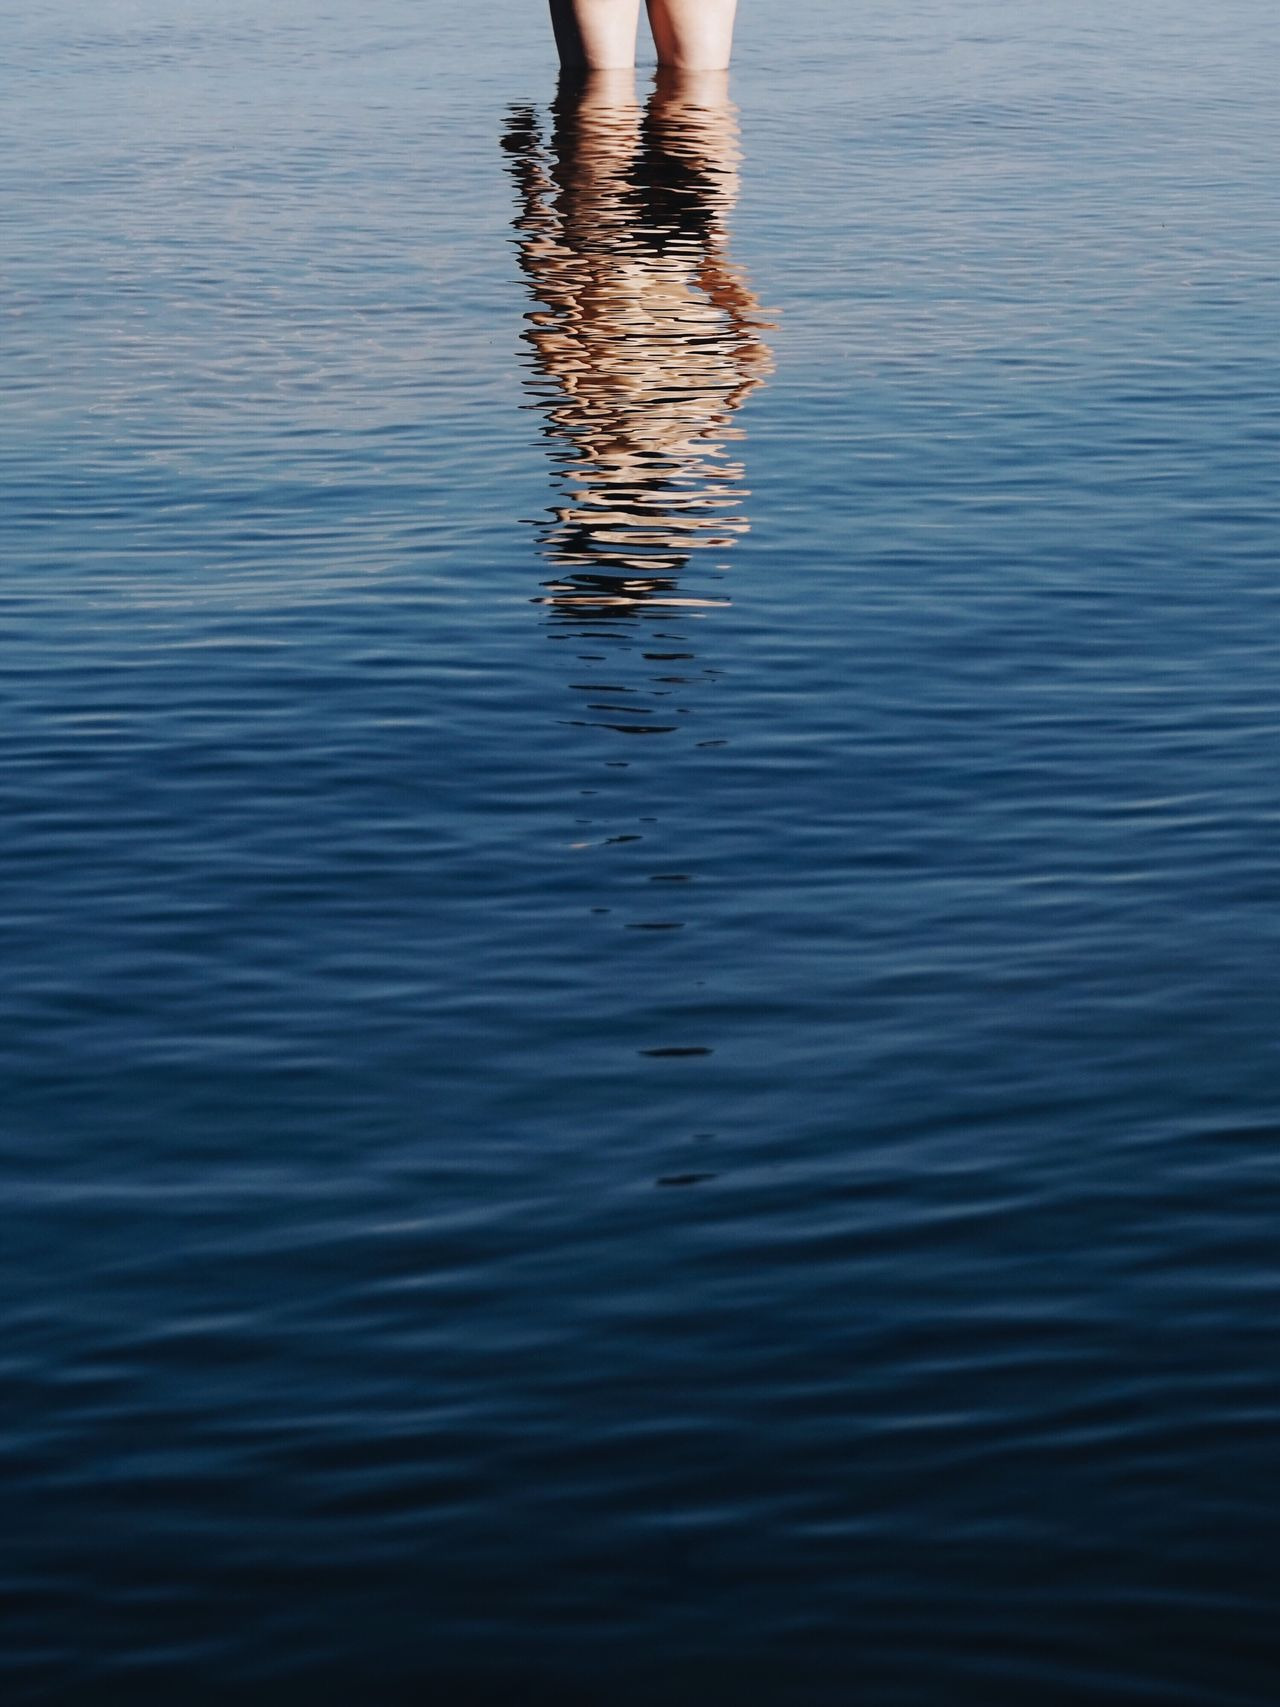 waves Wave waves, ocean, nature Reflection reflections reflection_collection reflections in the water Surfaces and Textures Water reflections water_collection Silhouette Woman nude Naked Ripples ripples in the water Abstract Photography abstract blue EyeEm Best Shots EyeEm Nature Lover Fine Art Photography woman who inspire you